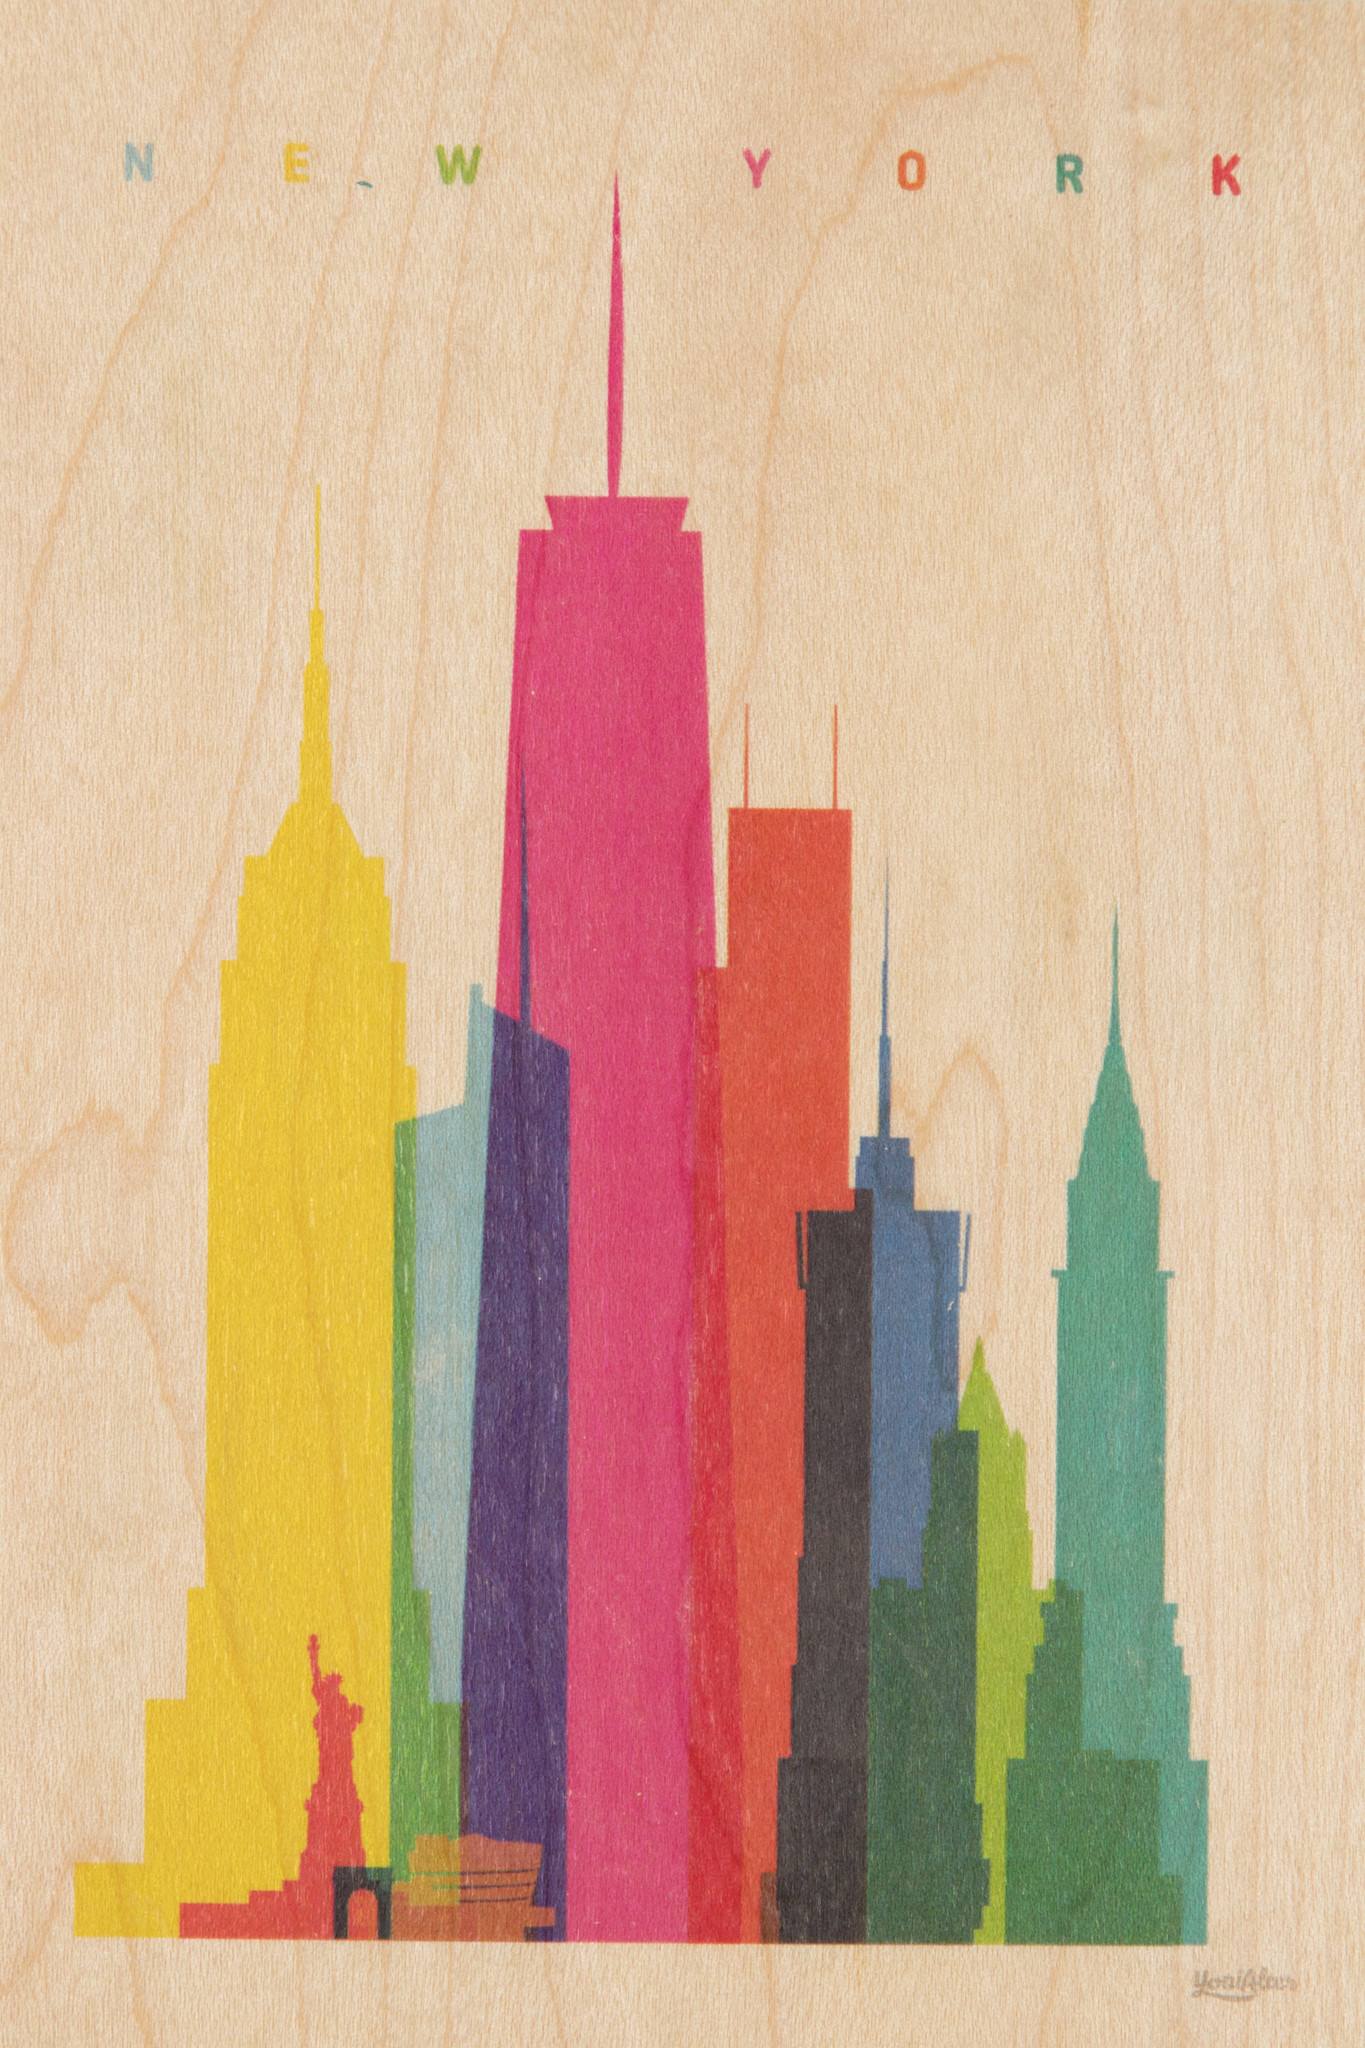 WOODHI postcard made of wood - New York